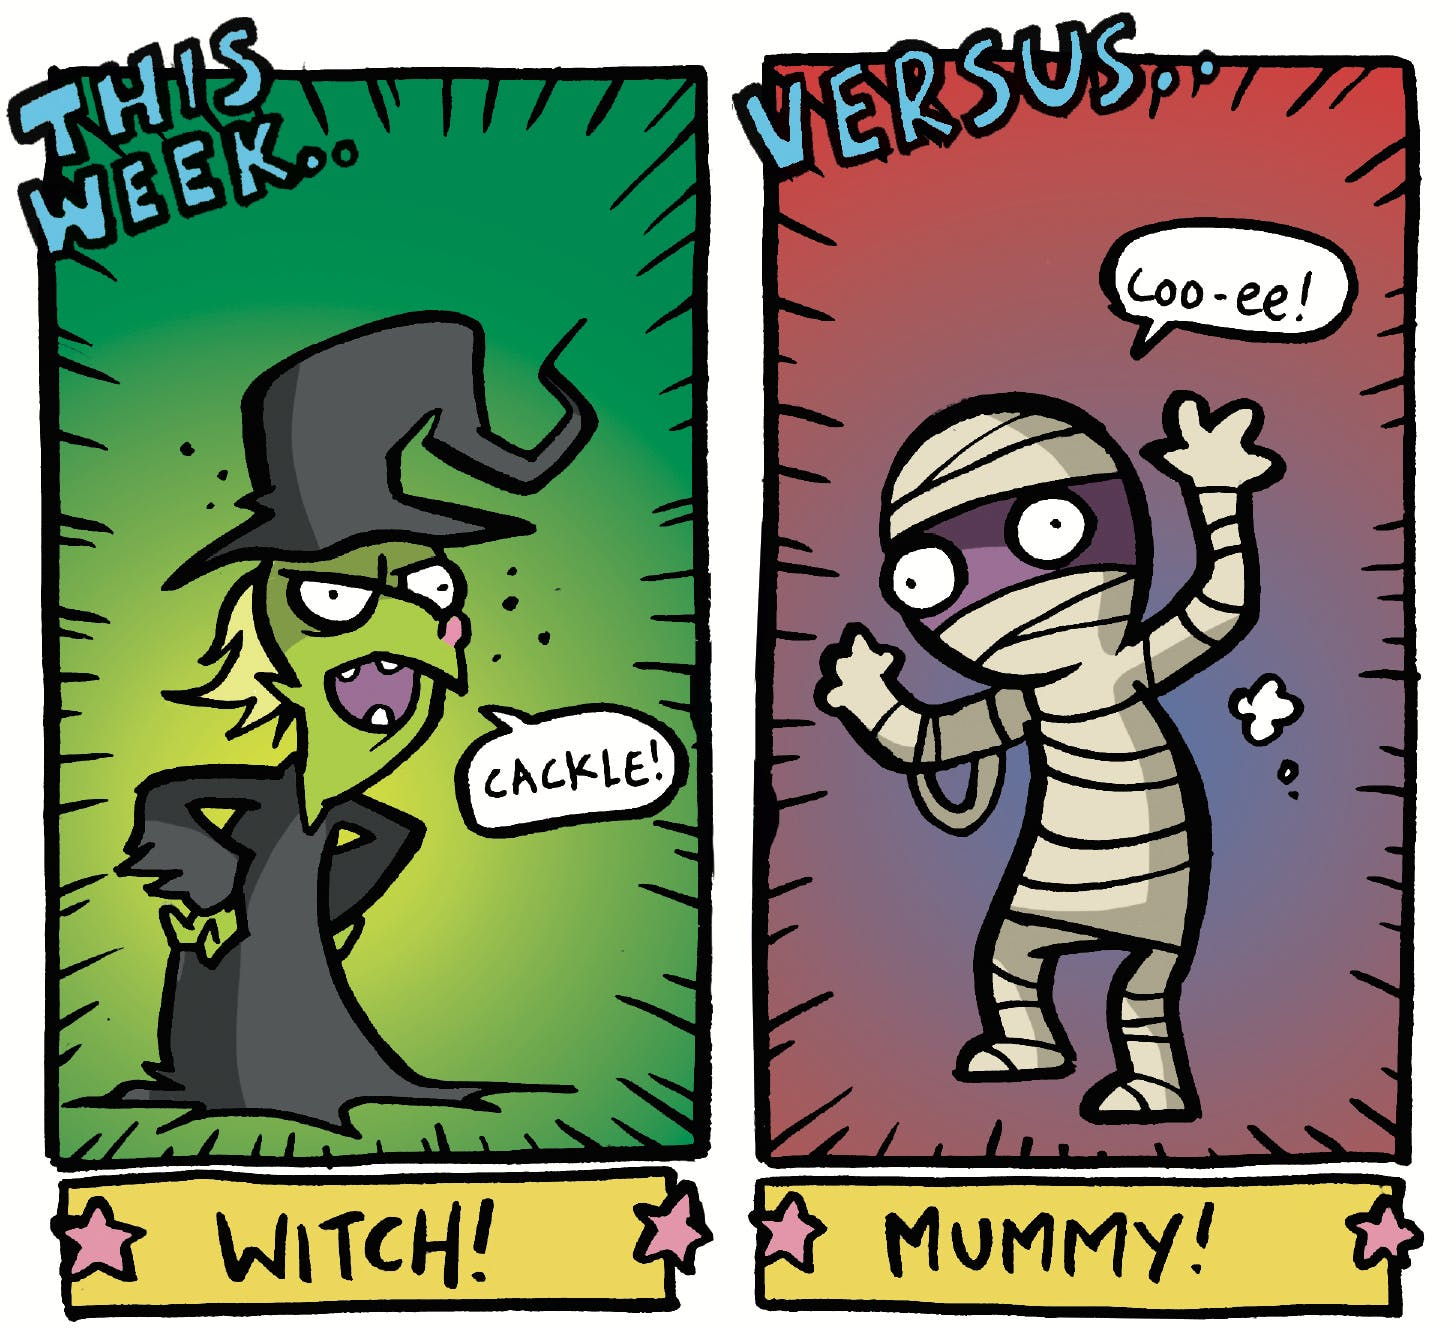 Arena of Awesome - Witch vs. Mummy